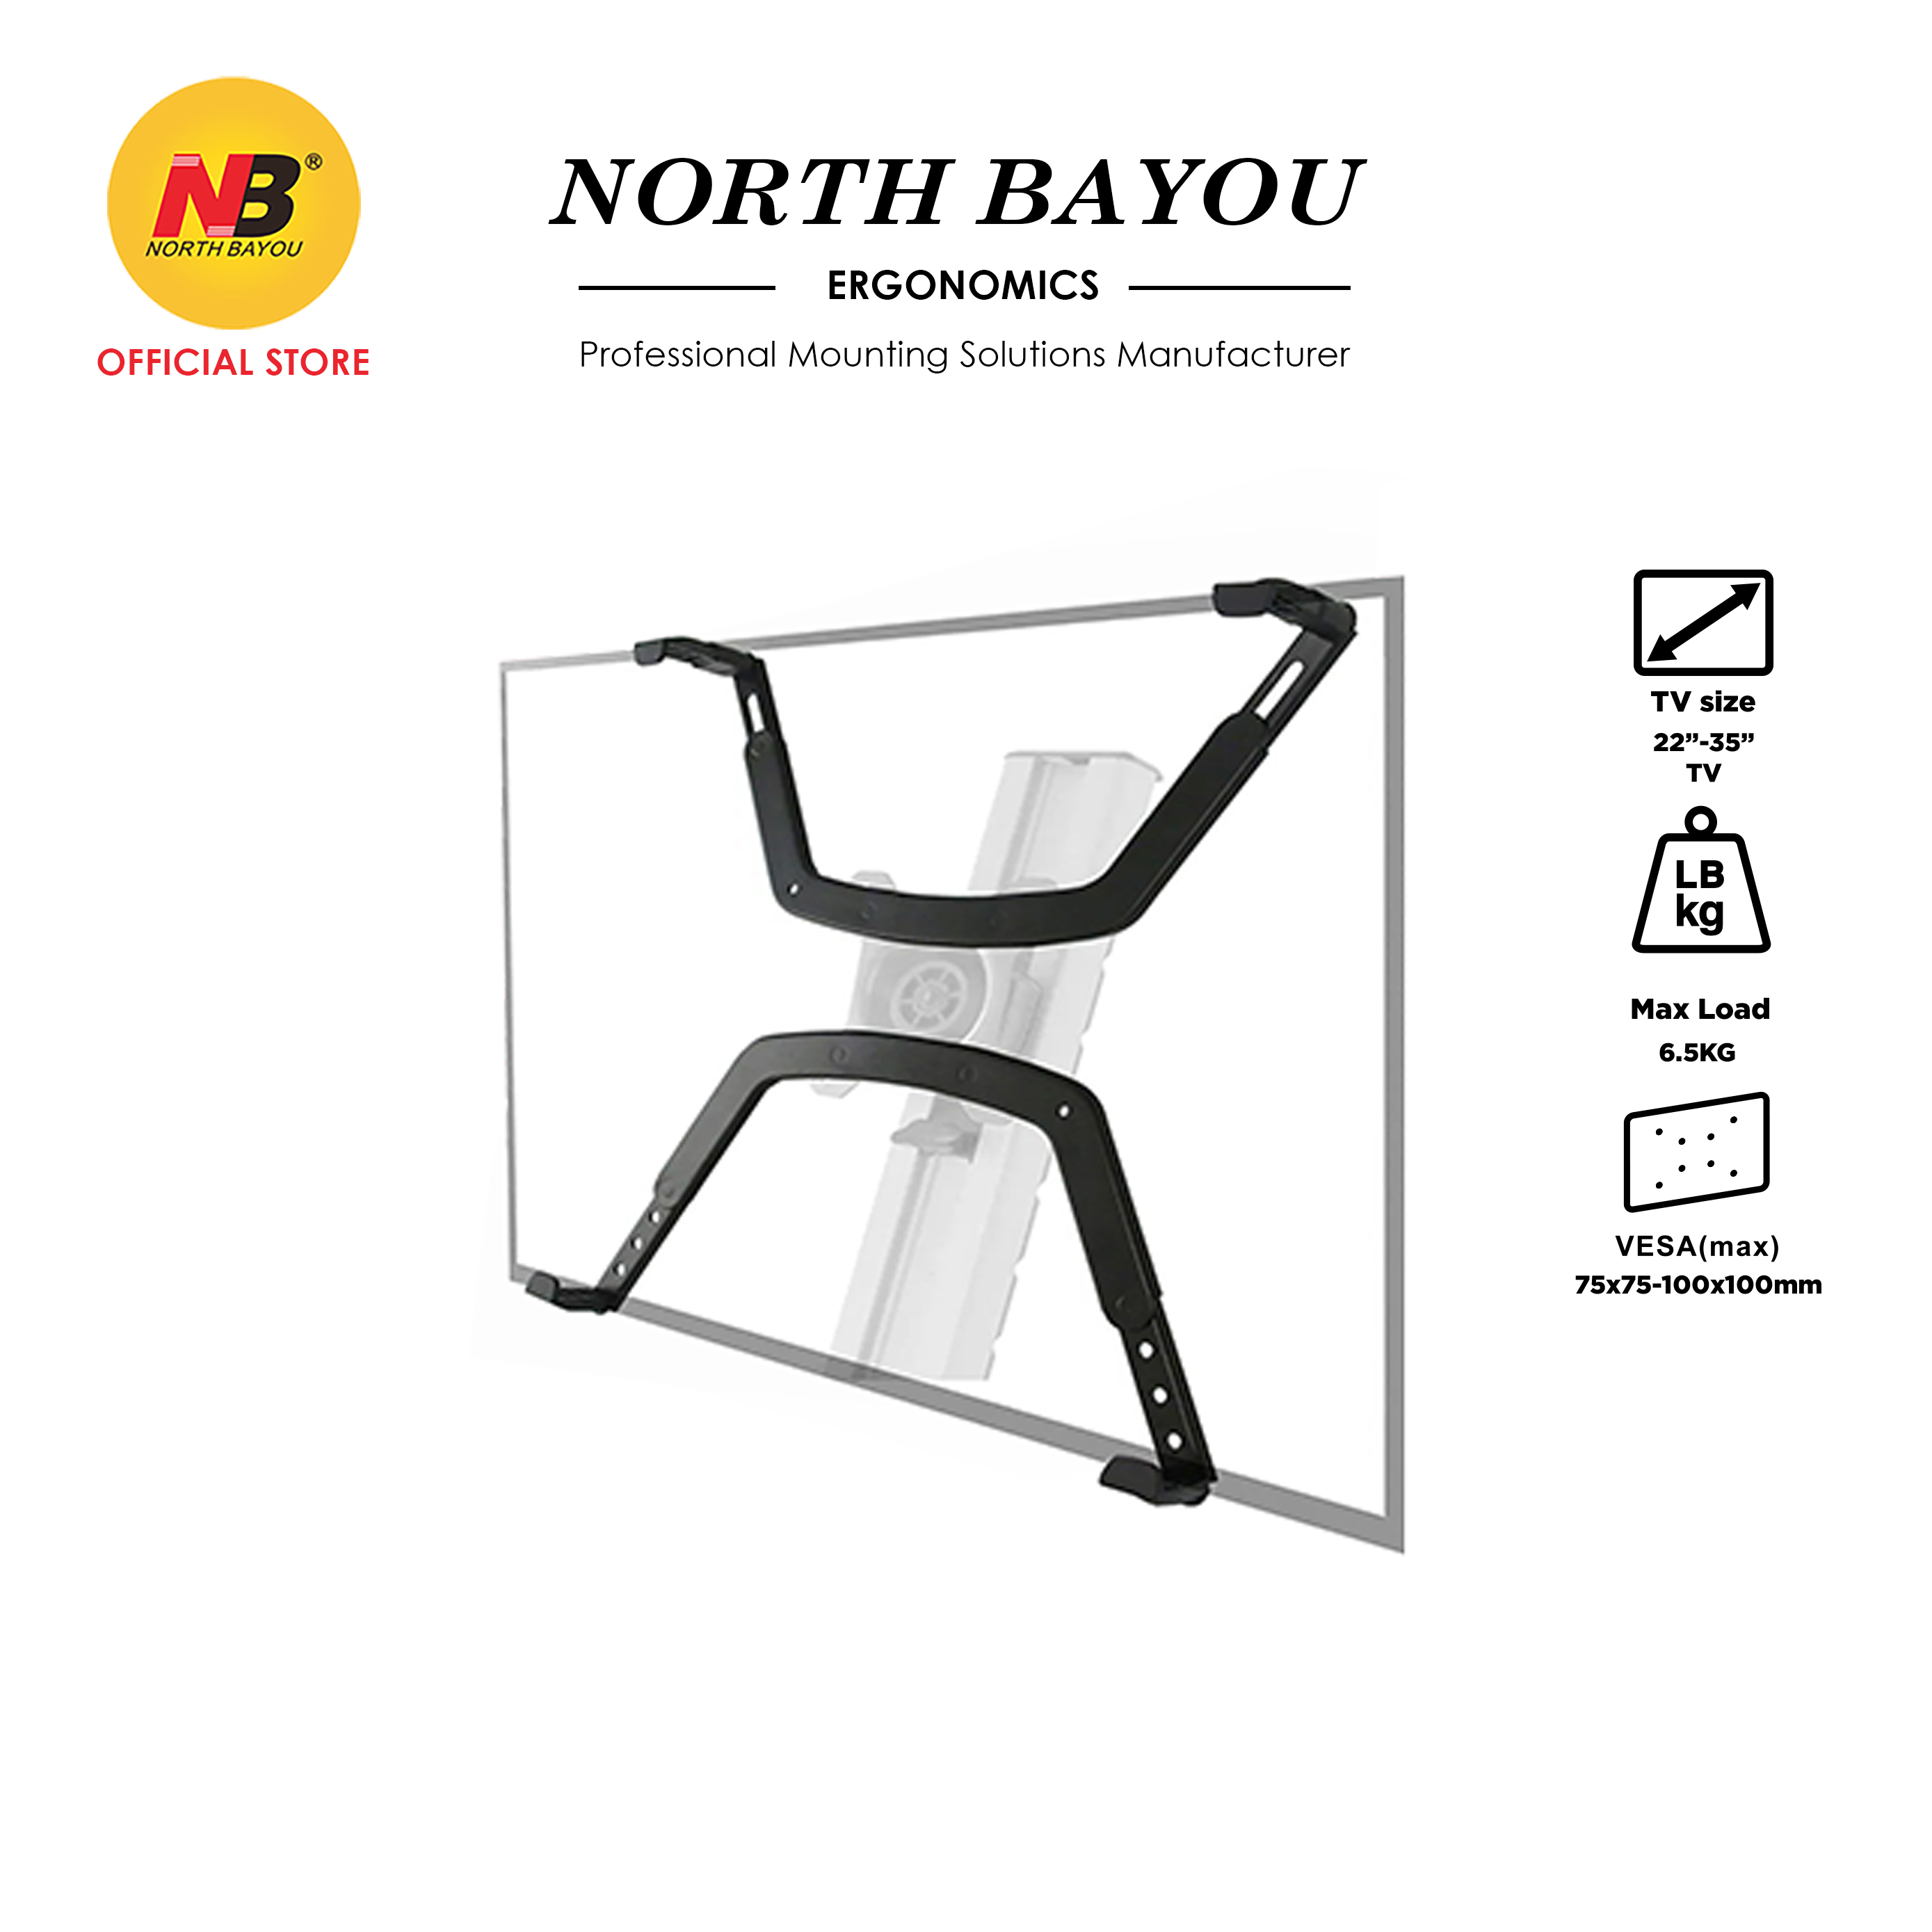 NB FP-1 Extension VESA Adapter Fixing Bracket Monitor Holder for 17-27 inch No Mounting Hole Monitors